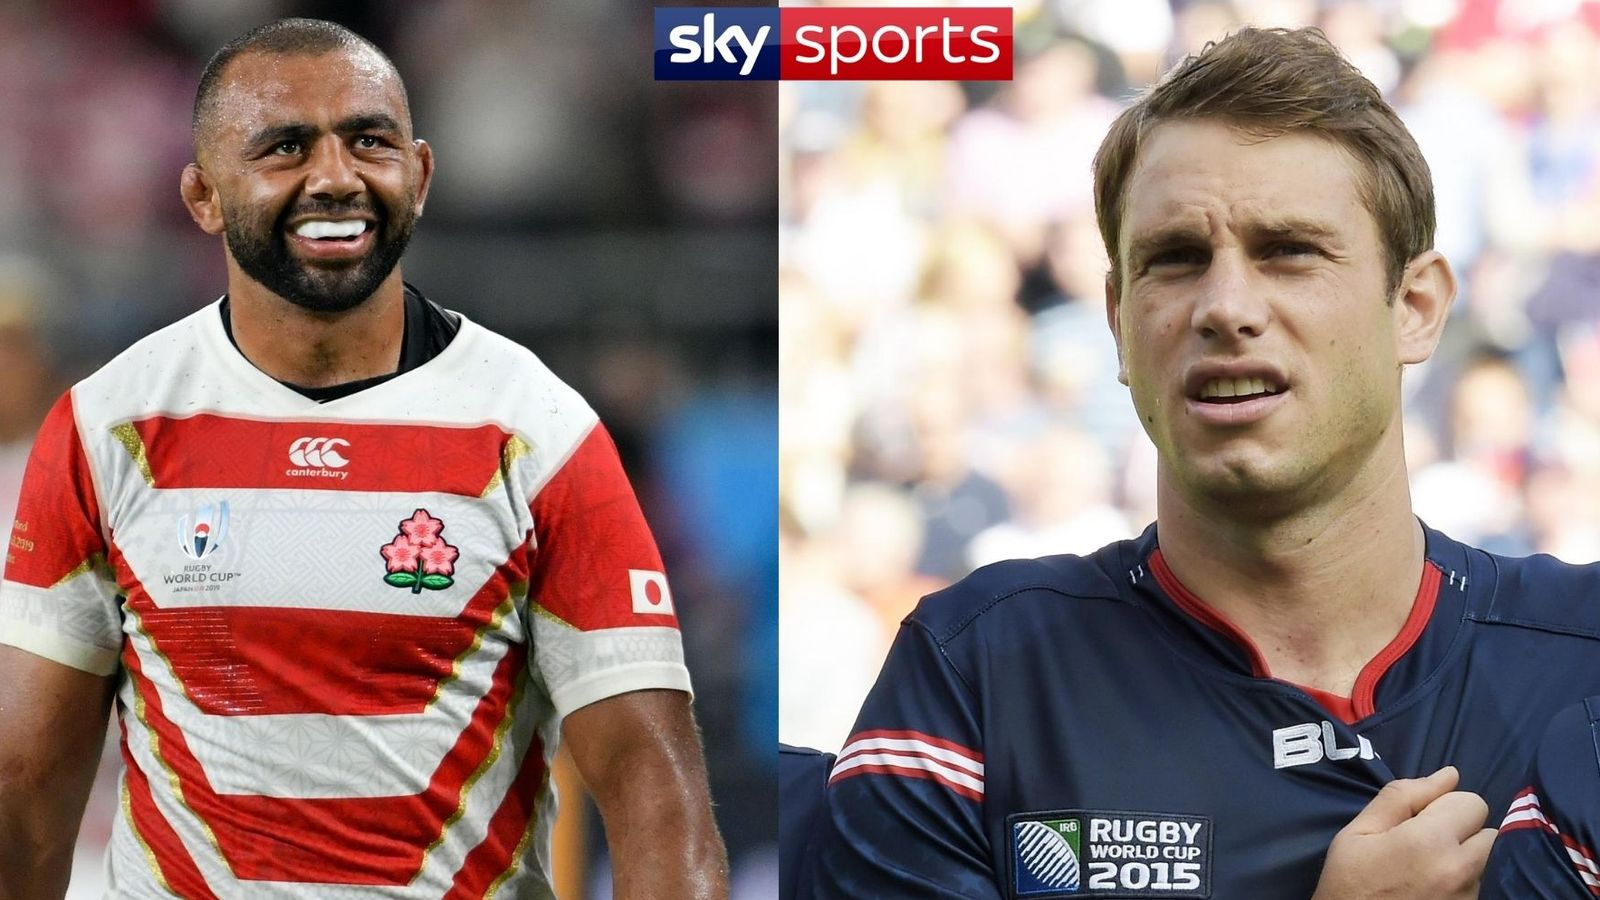 Rugby Podcast: Japan's Michael Leitch and USA's Blaine Scully discuss rugby in emerging nations